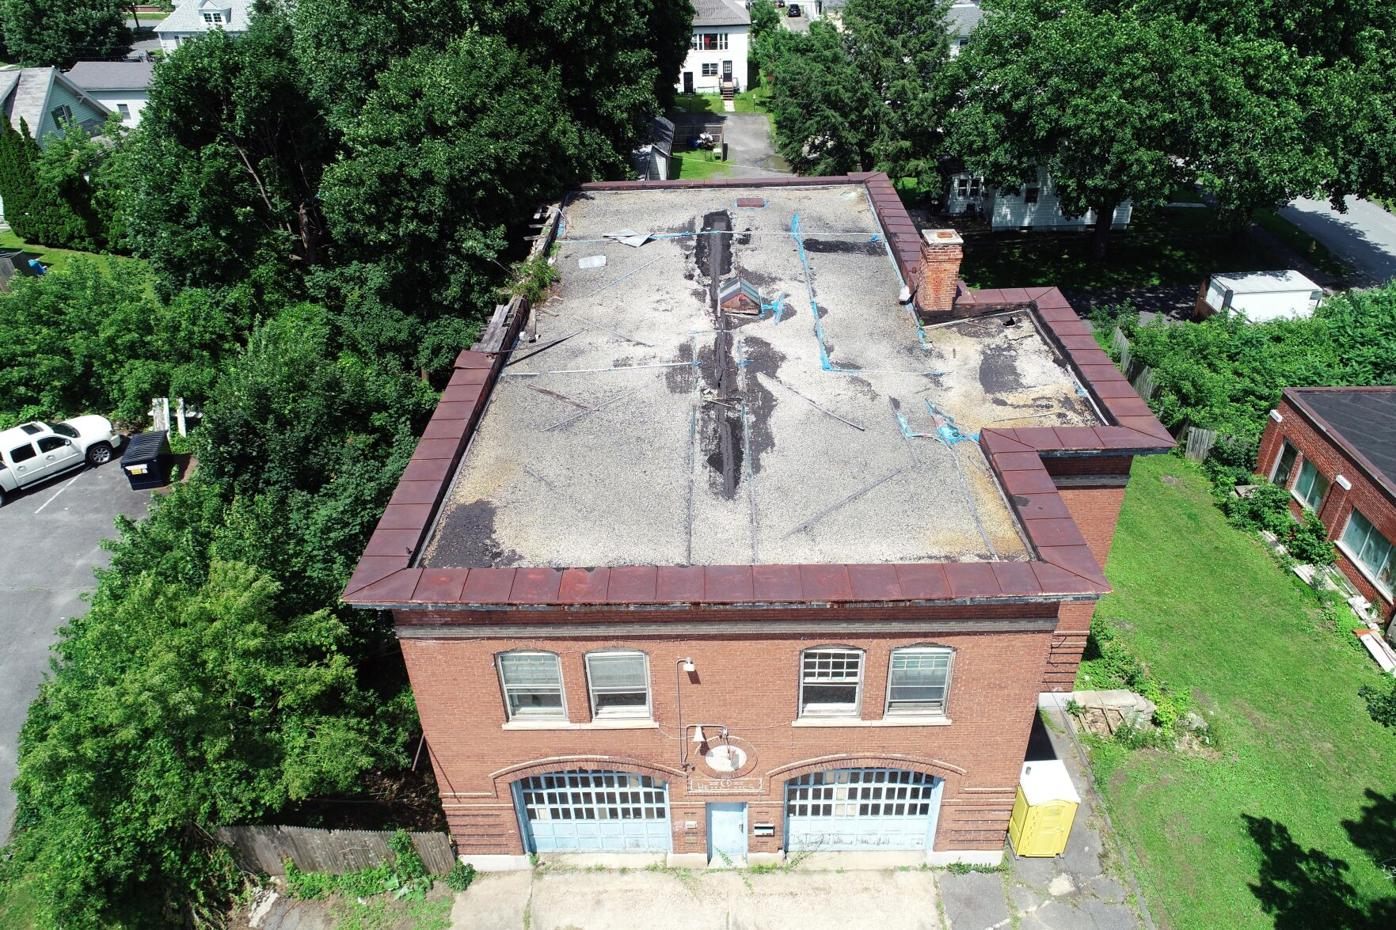 Aerial view of the Morningside Fire Station